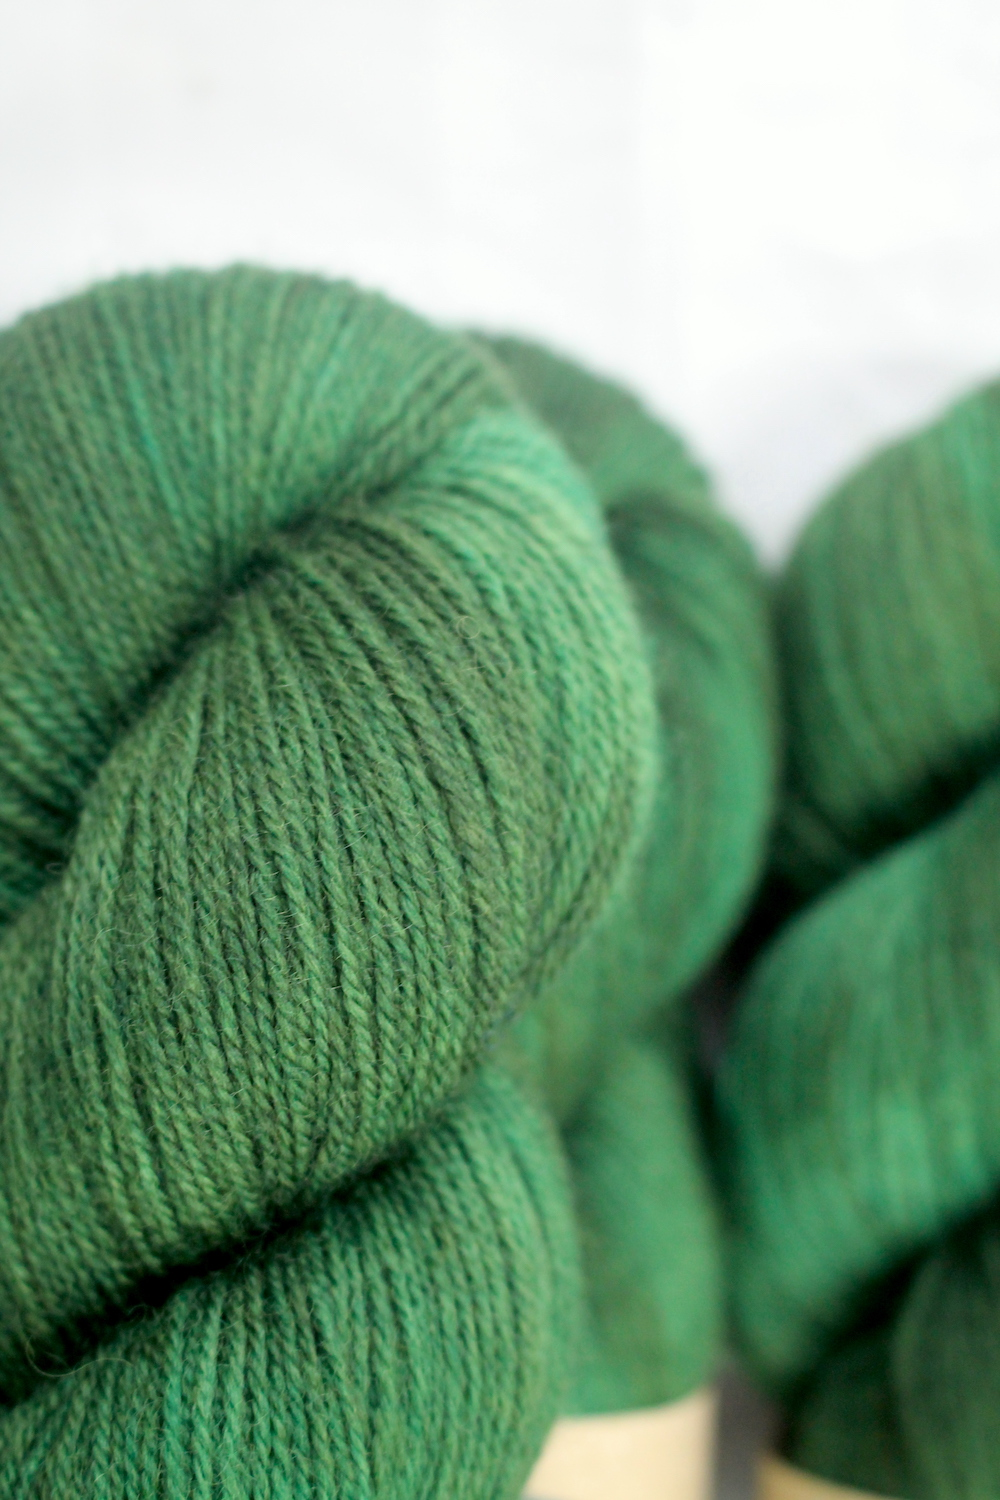 A pile of skeins of Nene 4 Ply in forest green